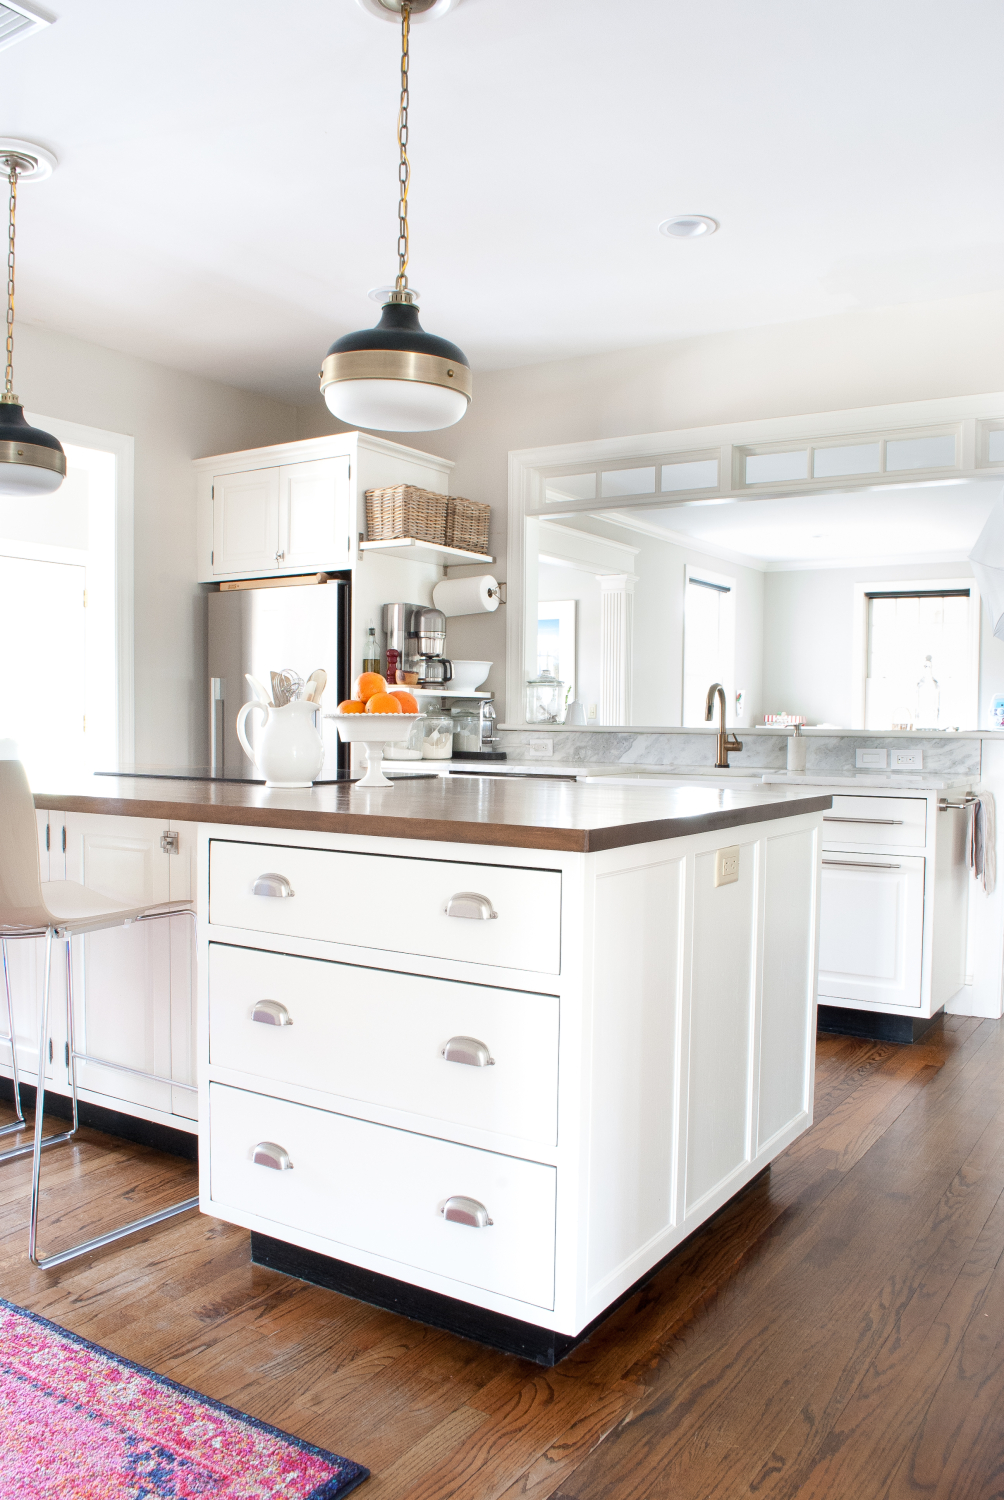 How To Add Detail A Plain Kitchen Island